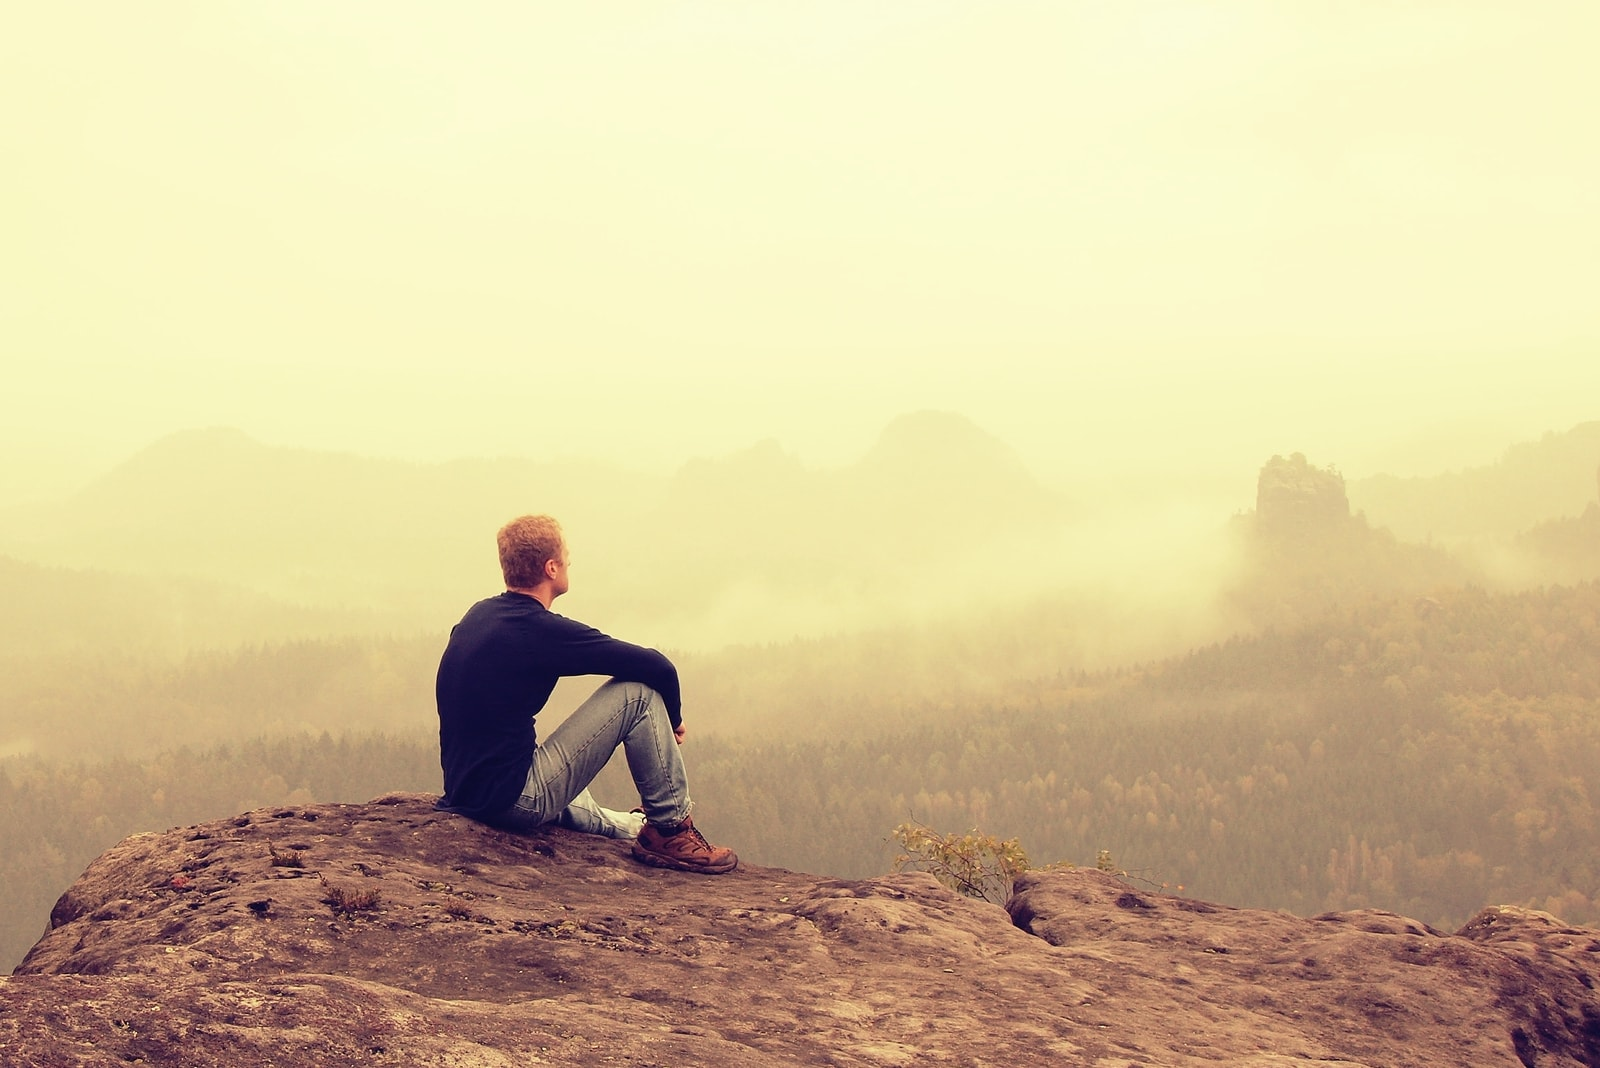 This Is Why Old Souls Struggle to Find Their Place In The World